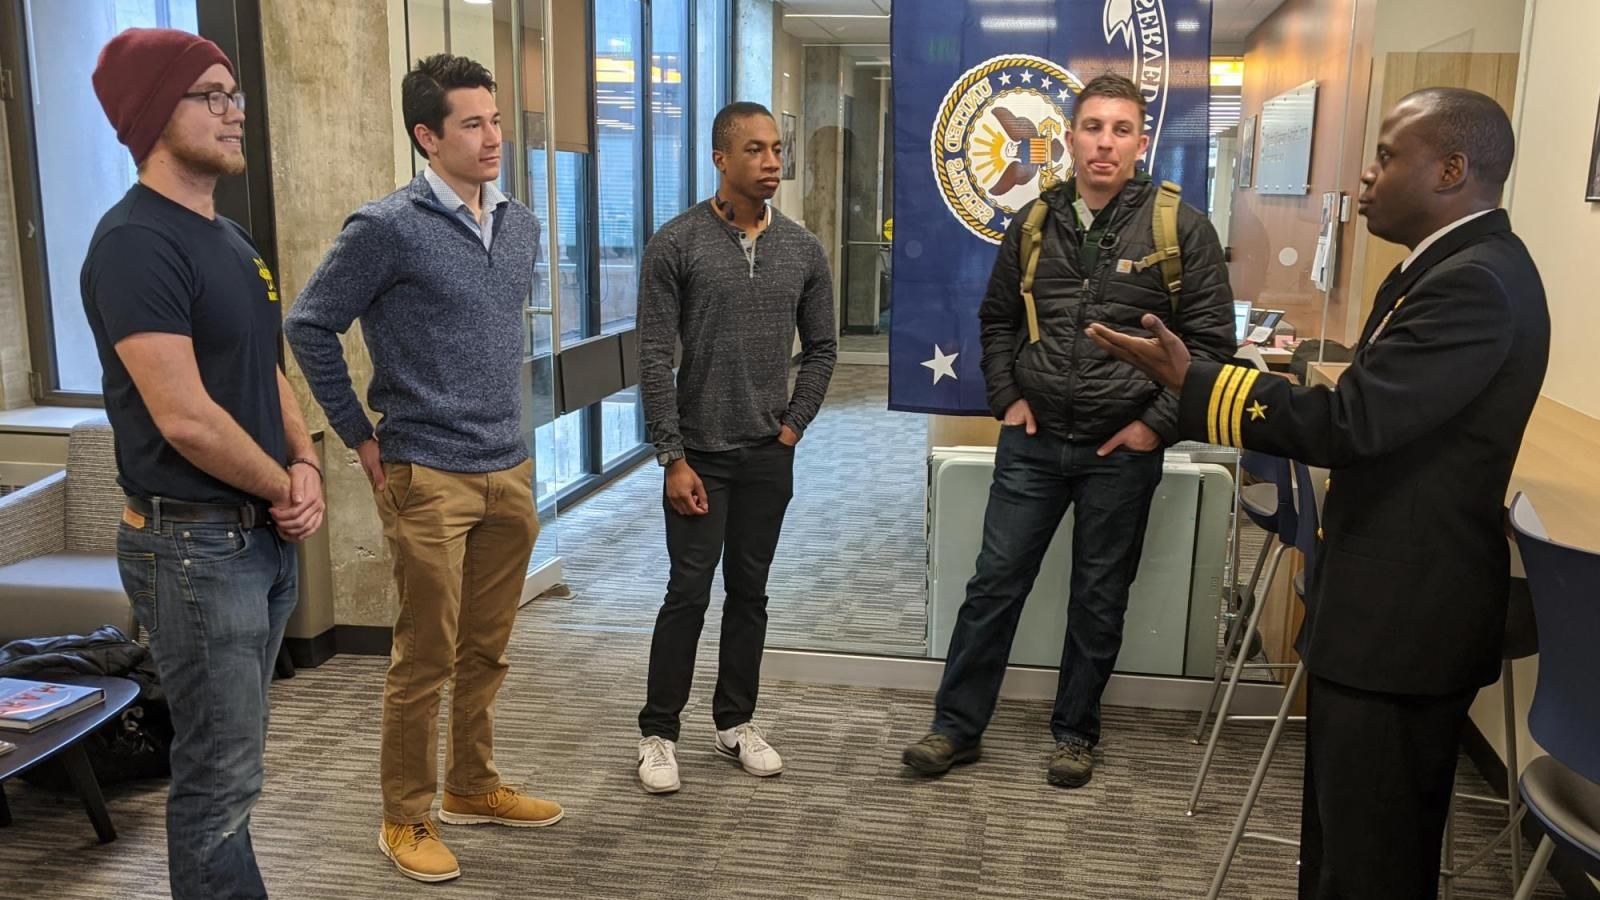 """Devin Lindsey and 3 other students chat with U.S. Navy Commander Robert """"Mac"""" McFarlin during his visit to CU Engineering."""